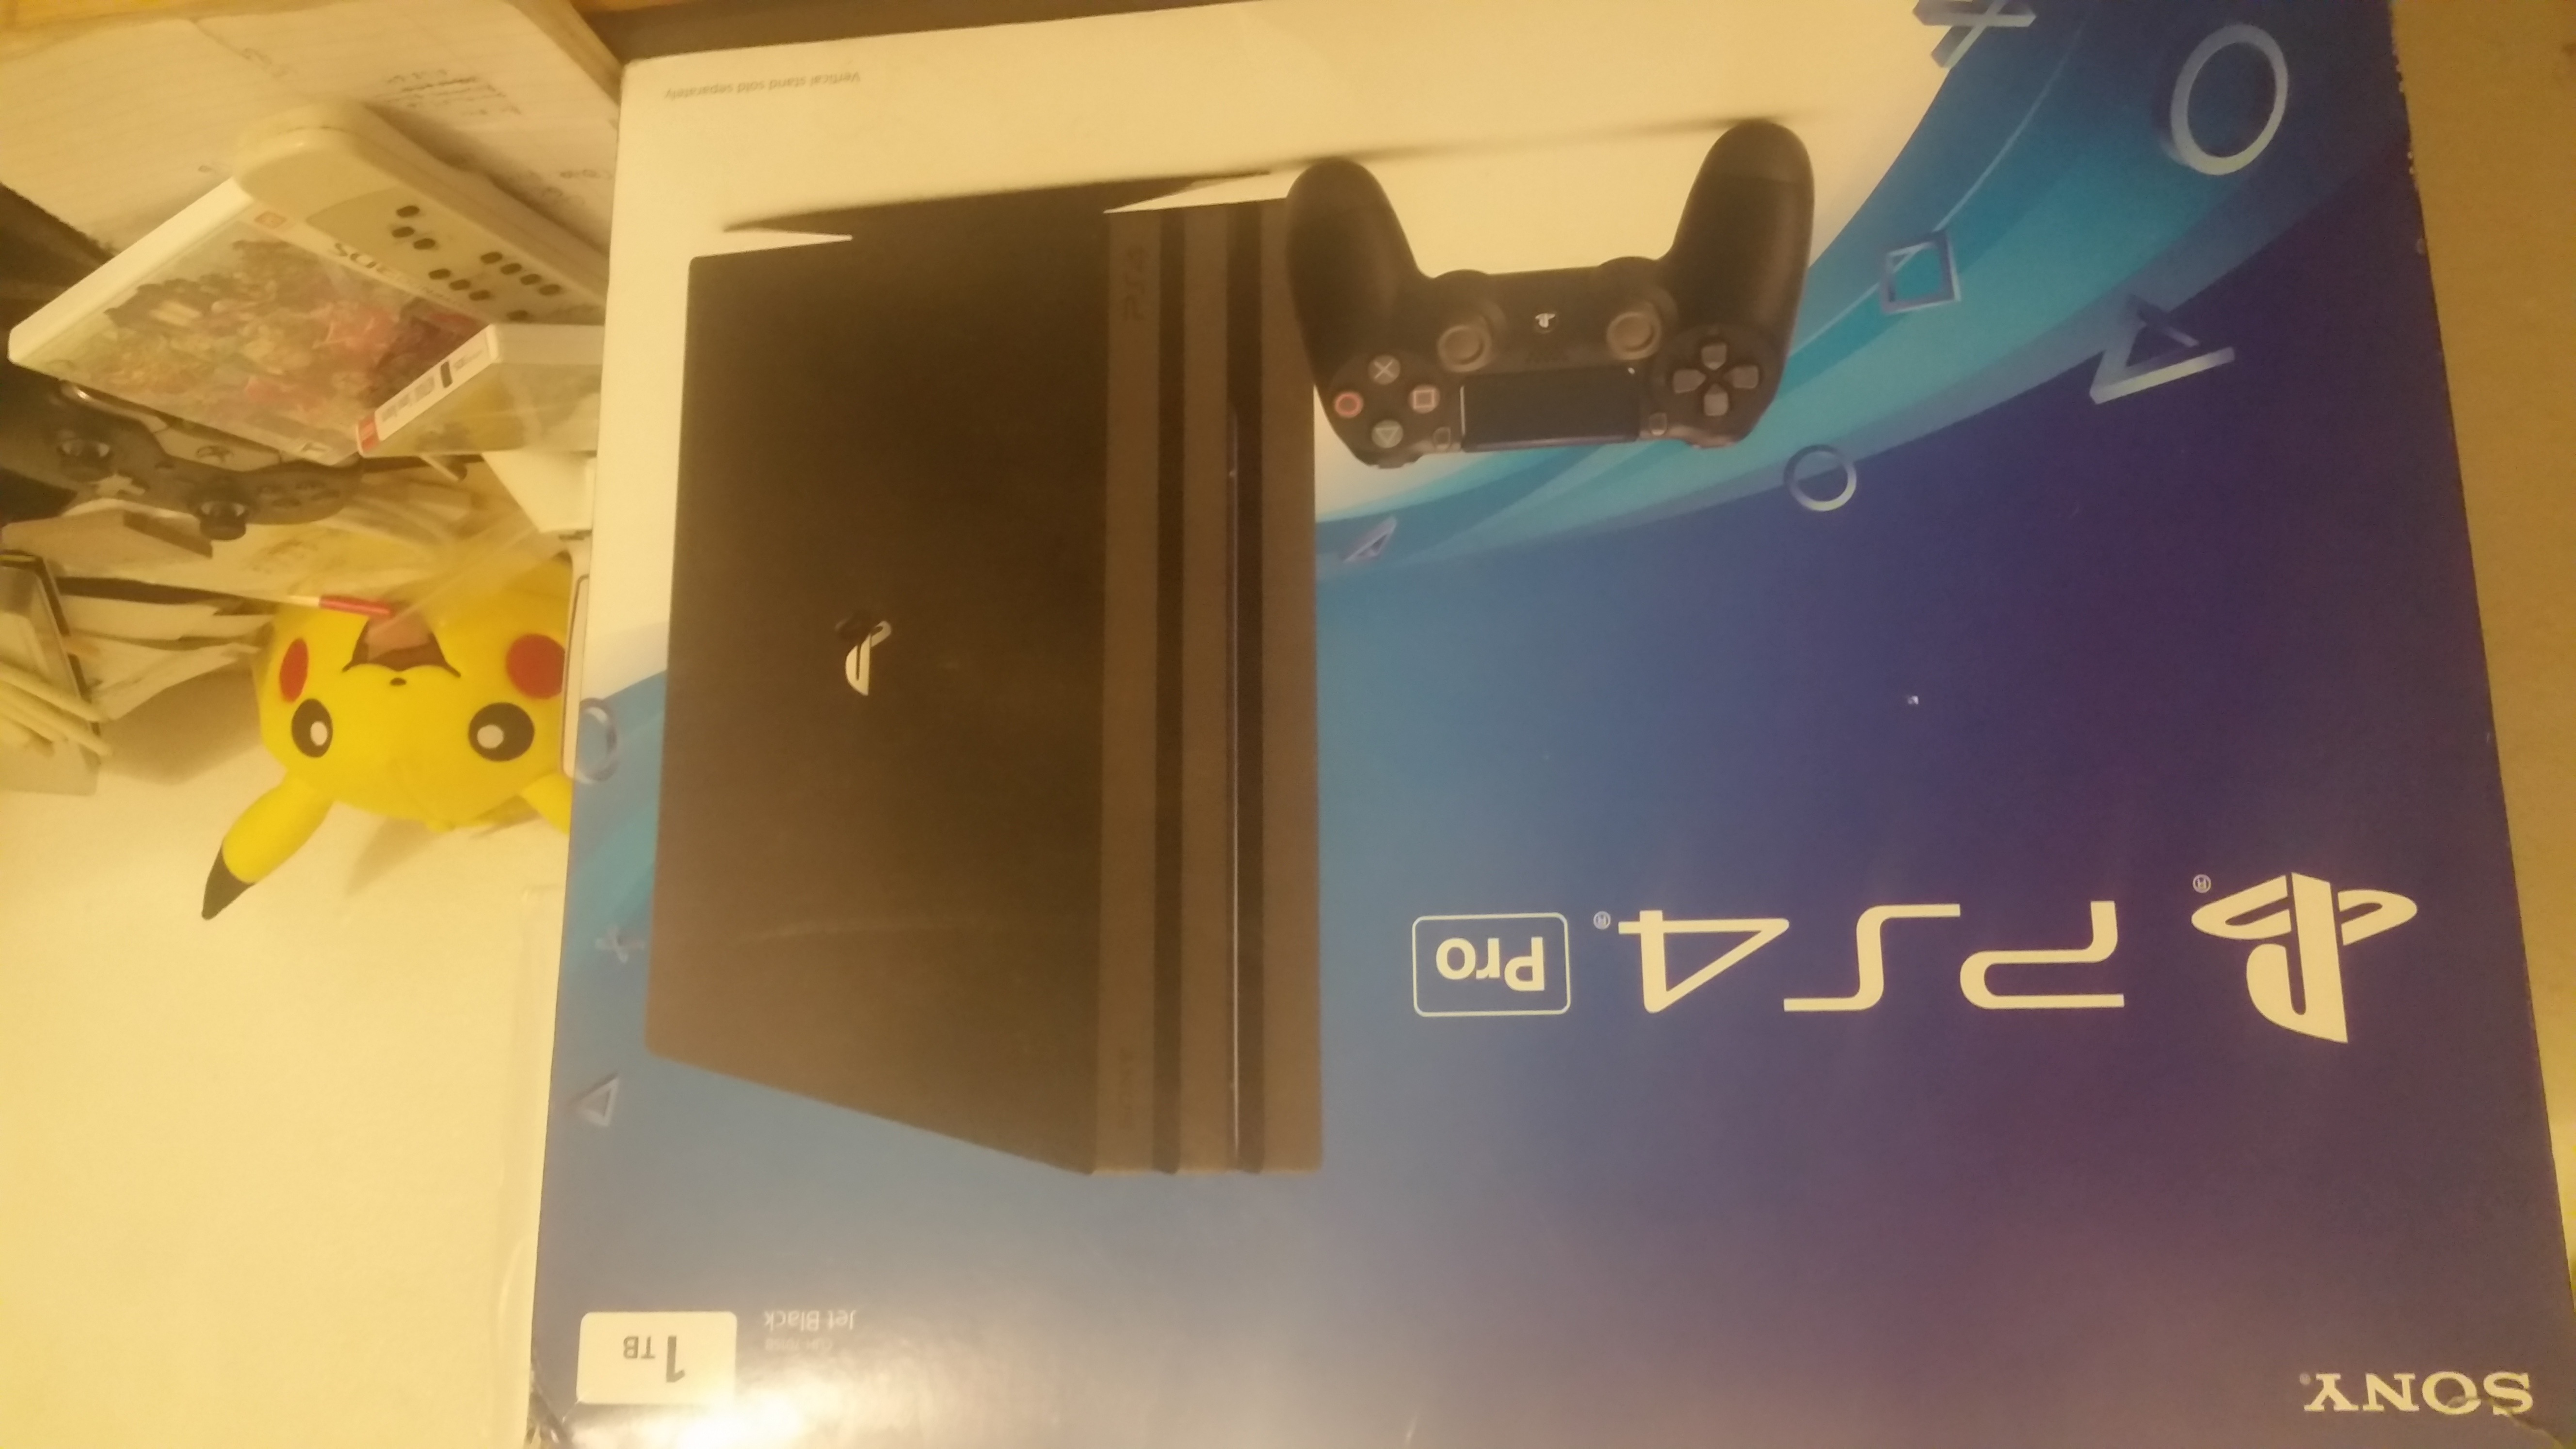 PLAYSTATION 4 PRO (1TB) - used in great condition - complete